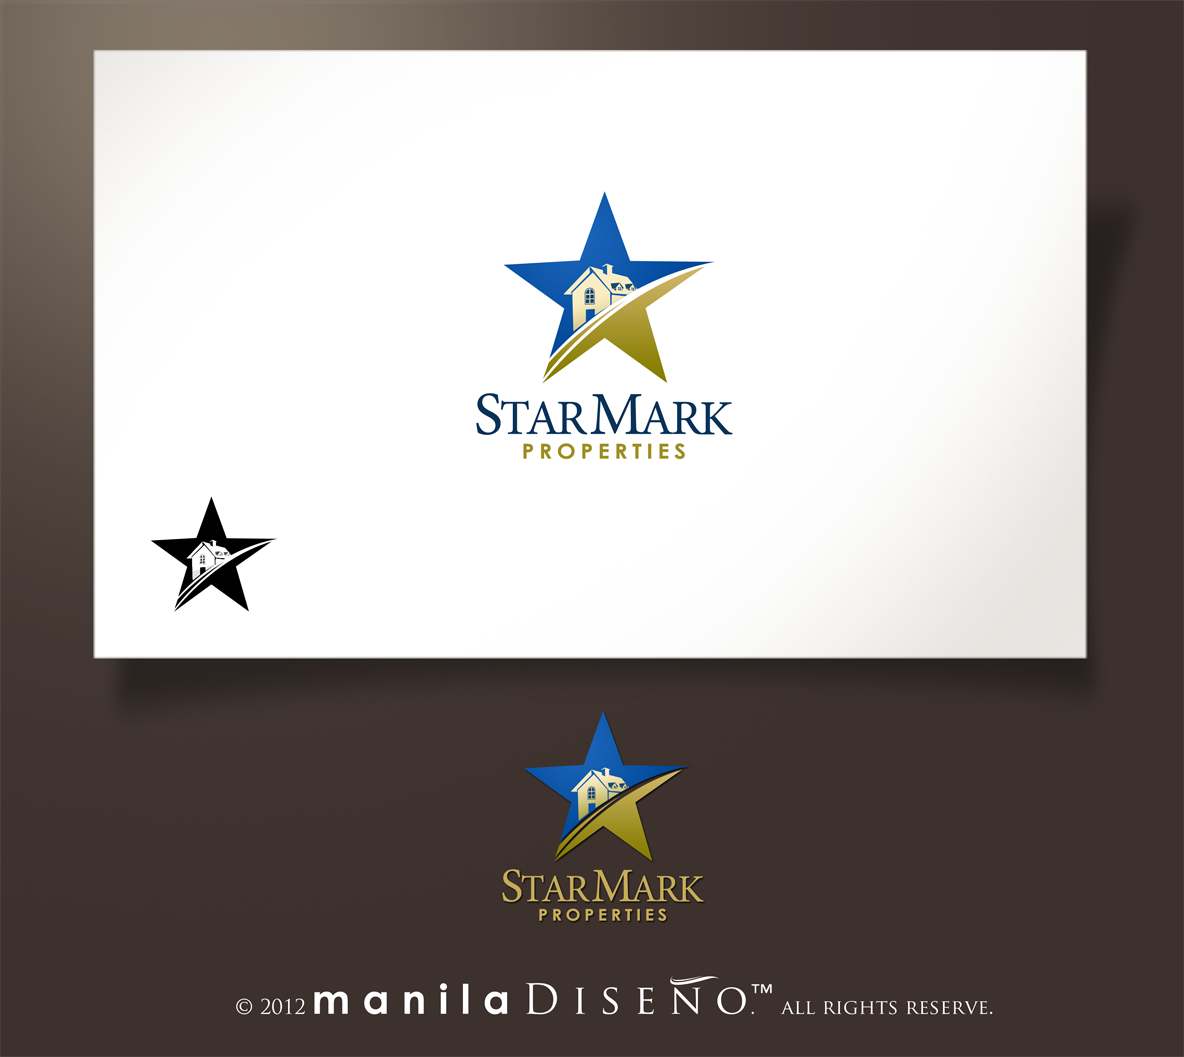 New business or advertising wanted for StarMark Properties